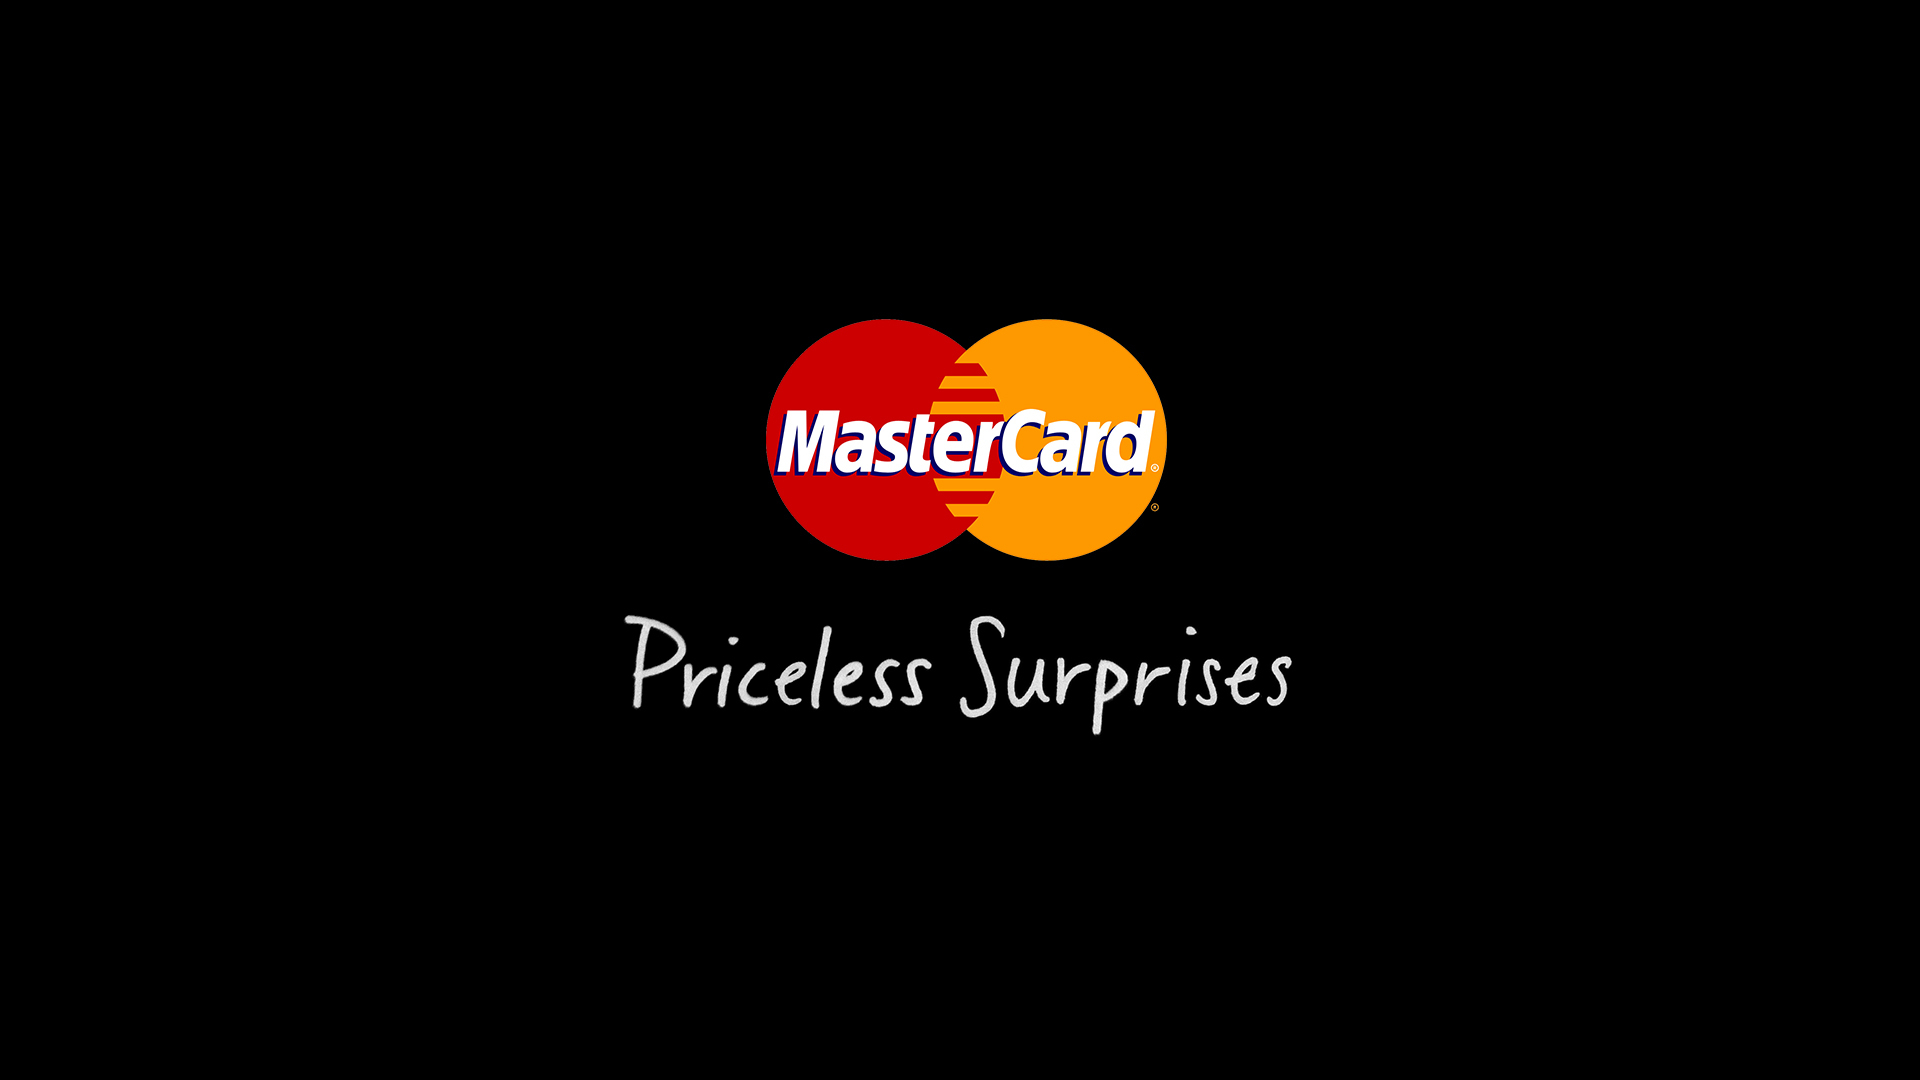 MasterCard-Priceless-Surprises